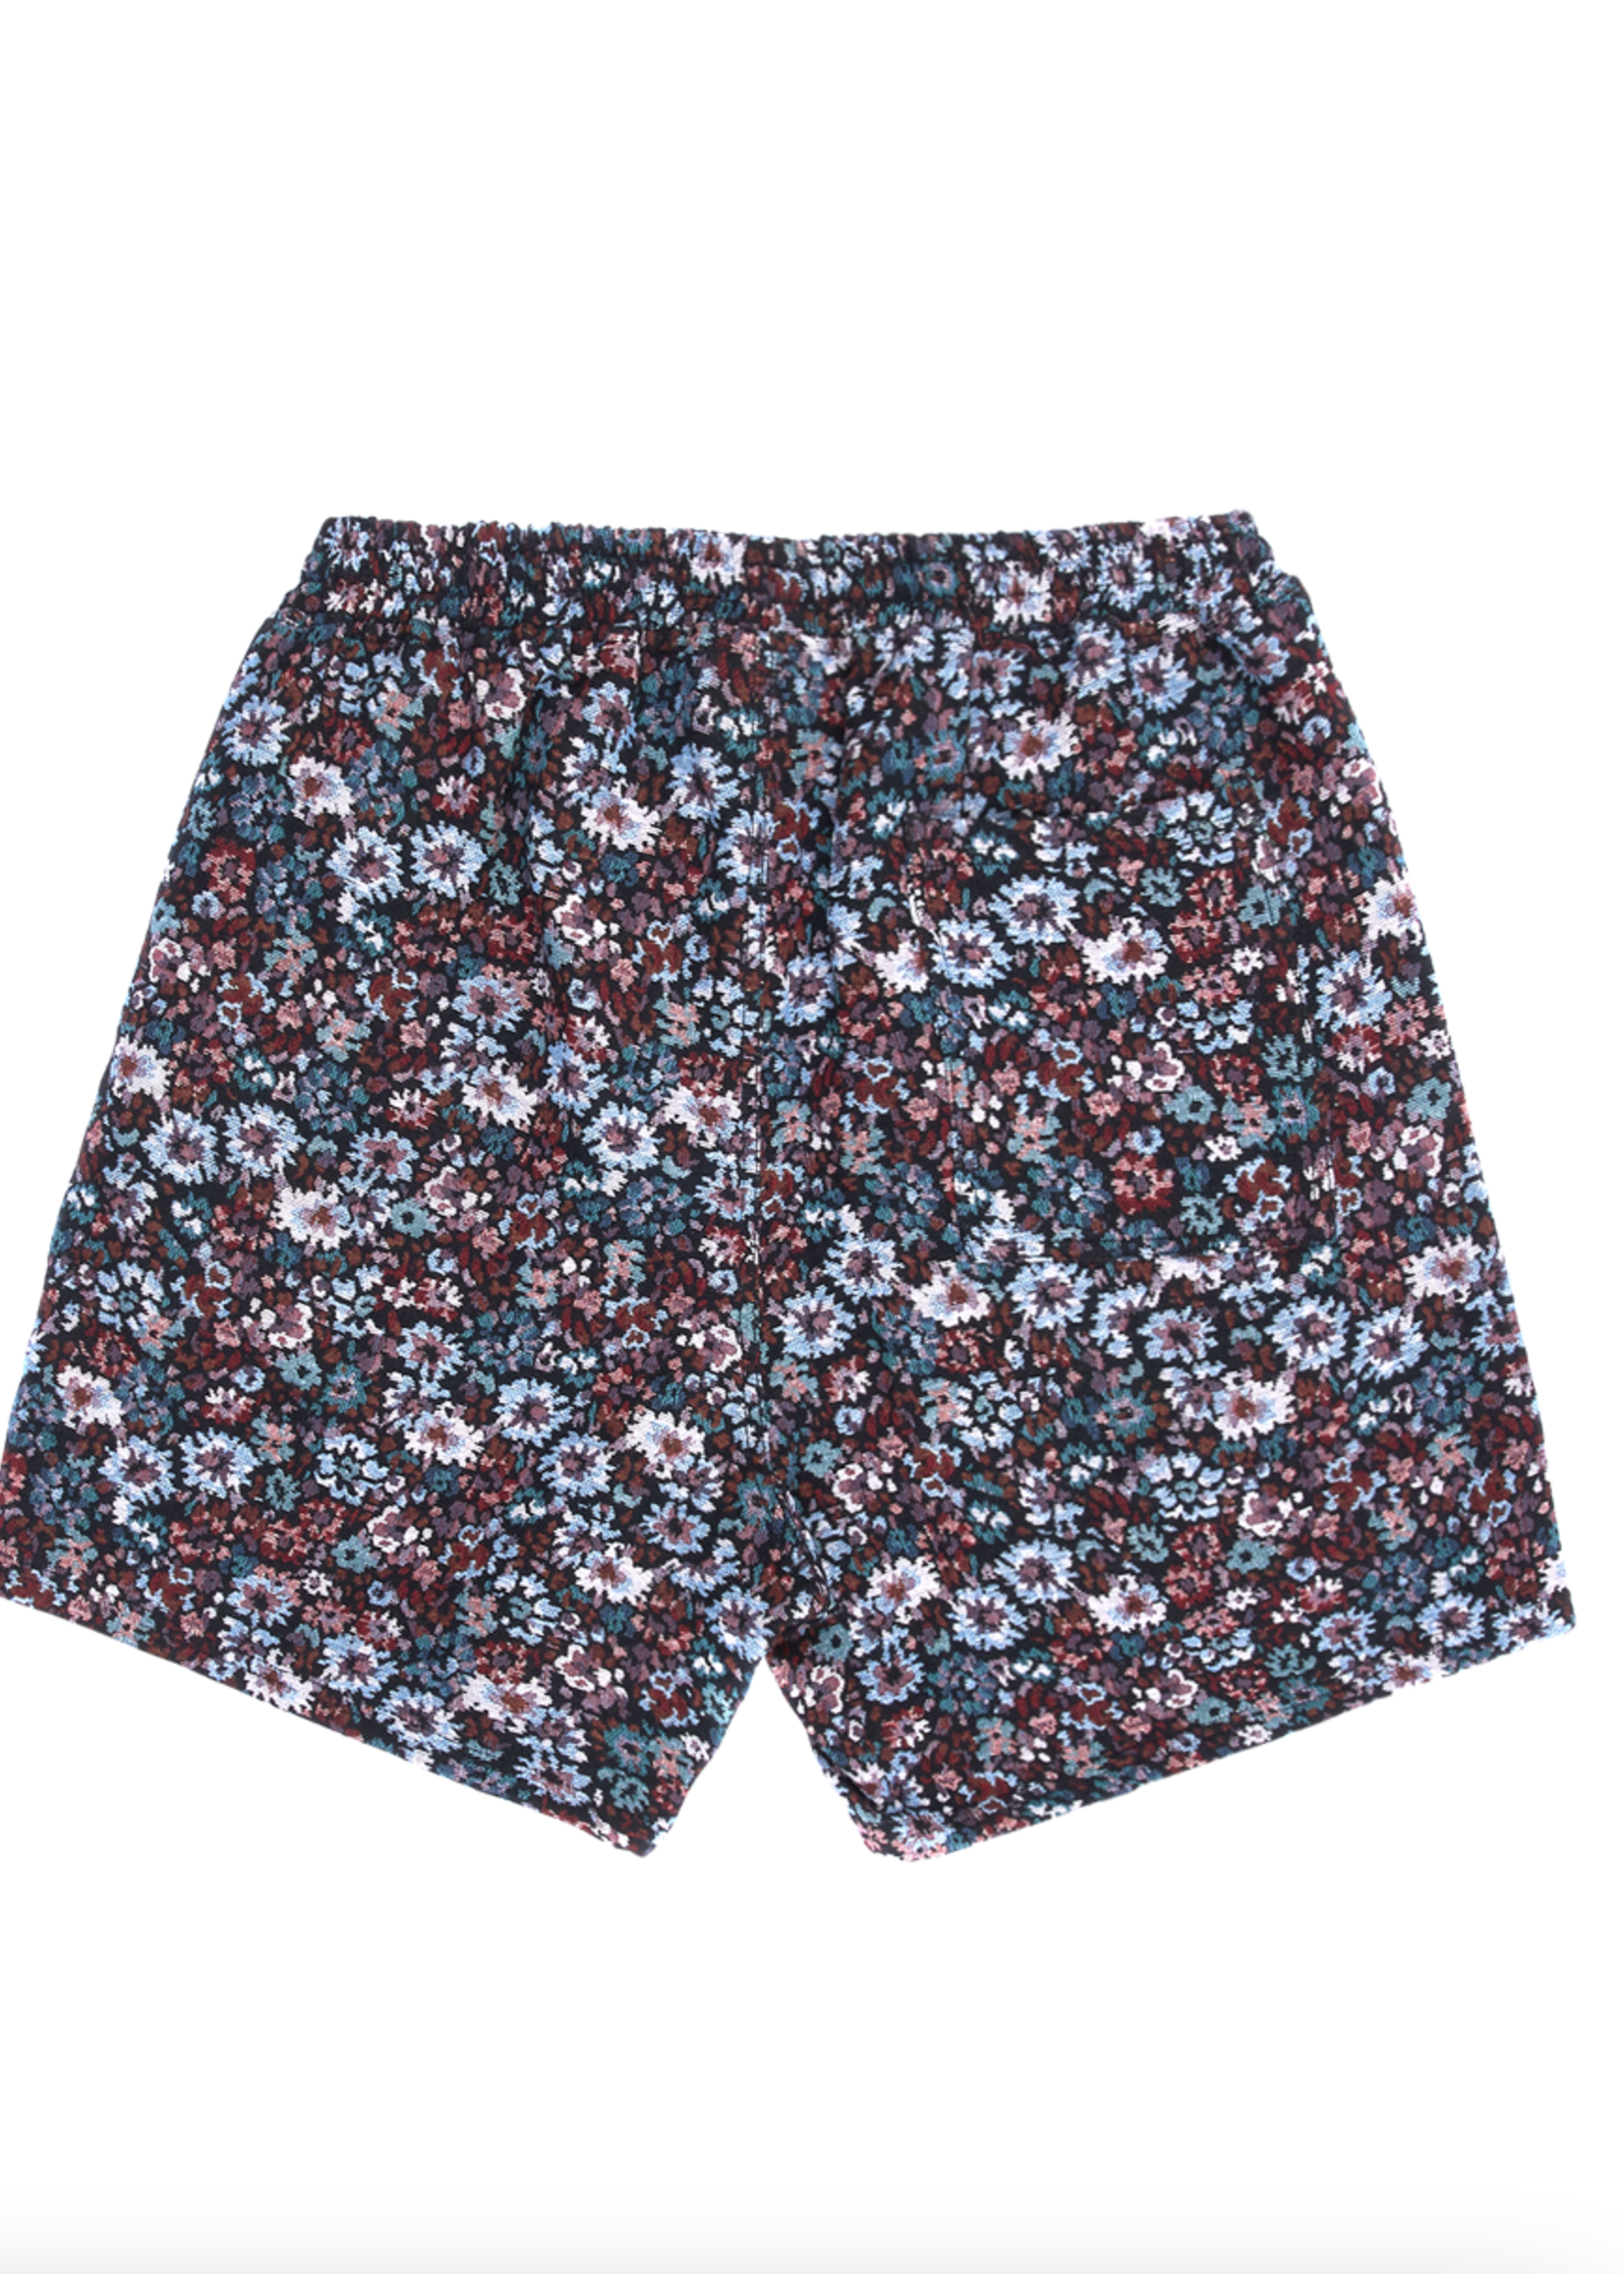 PLEASURES Quitter Shorts in Black Floral